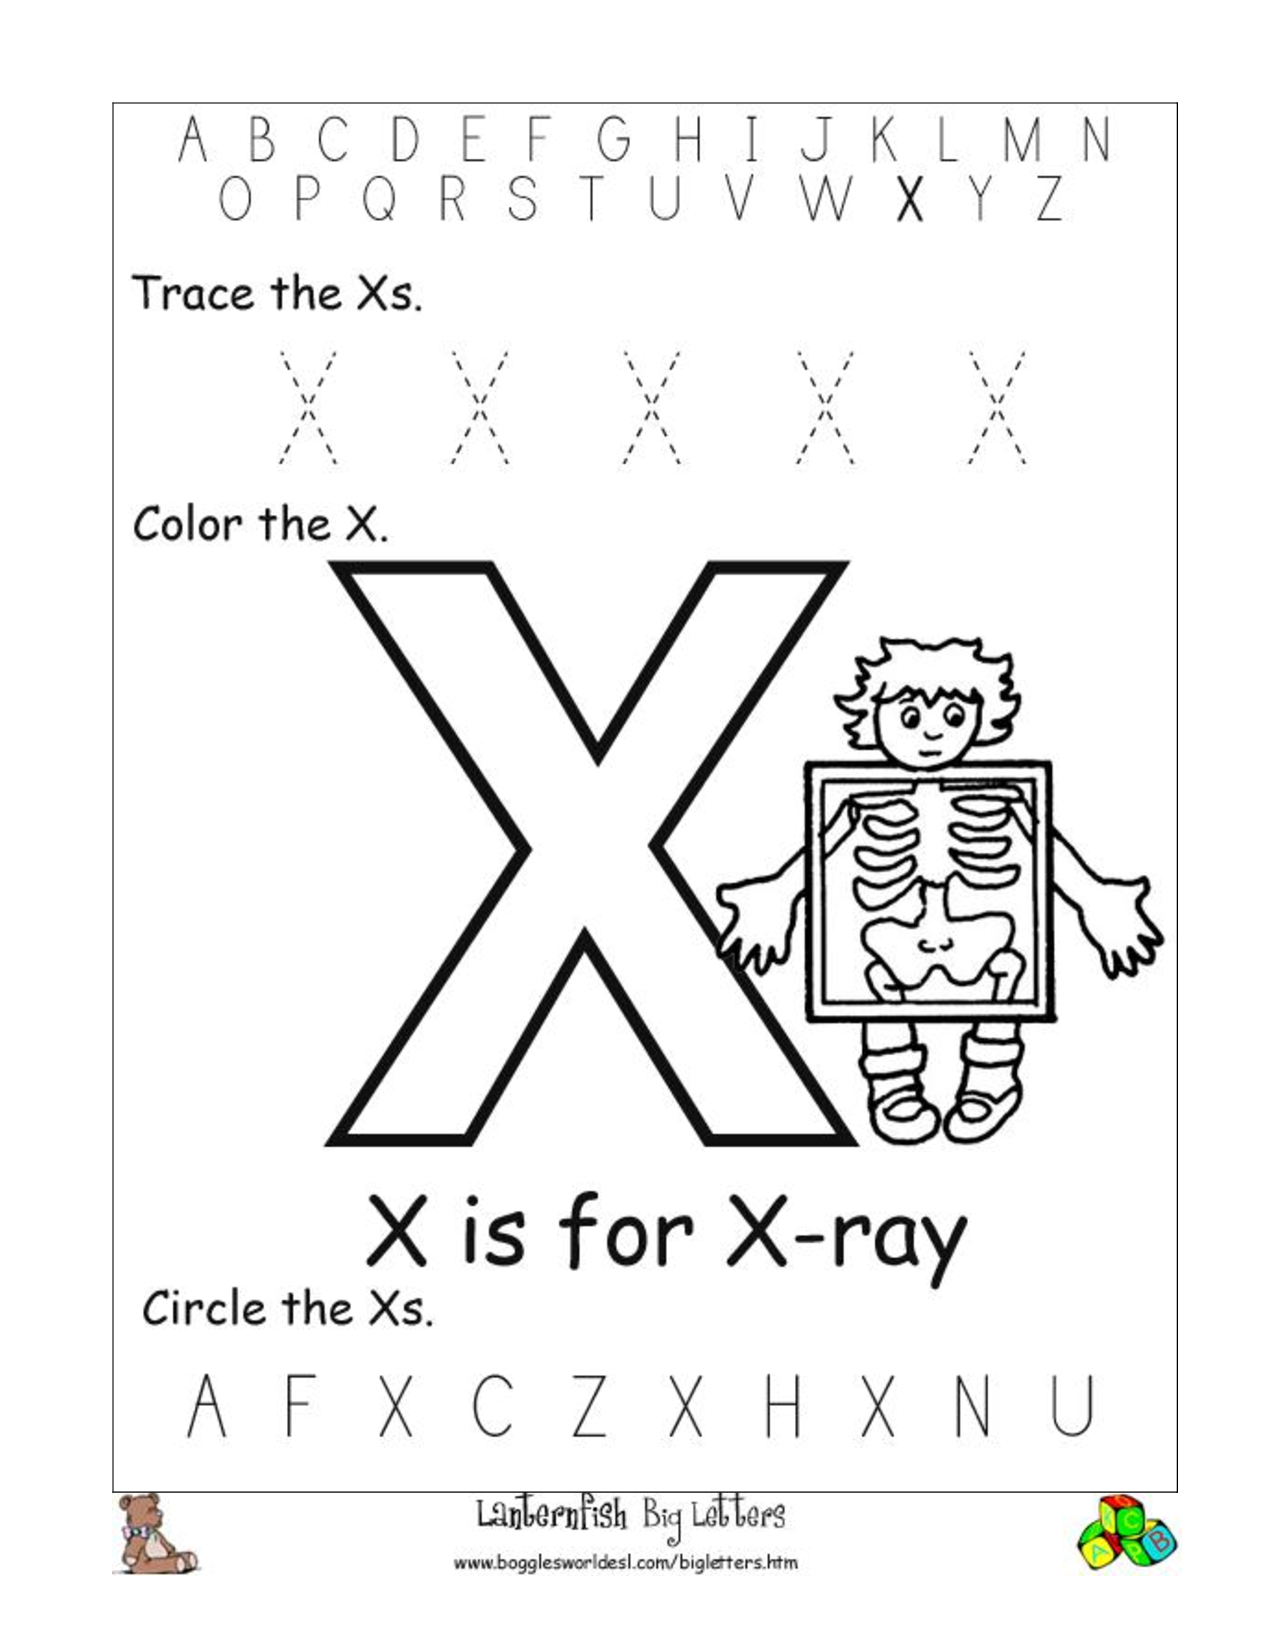 Alphabet Worksheets for Preschoolers of the alphabet